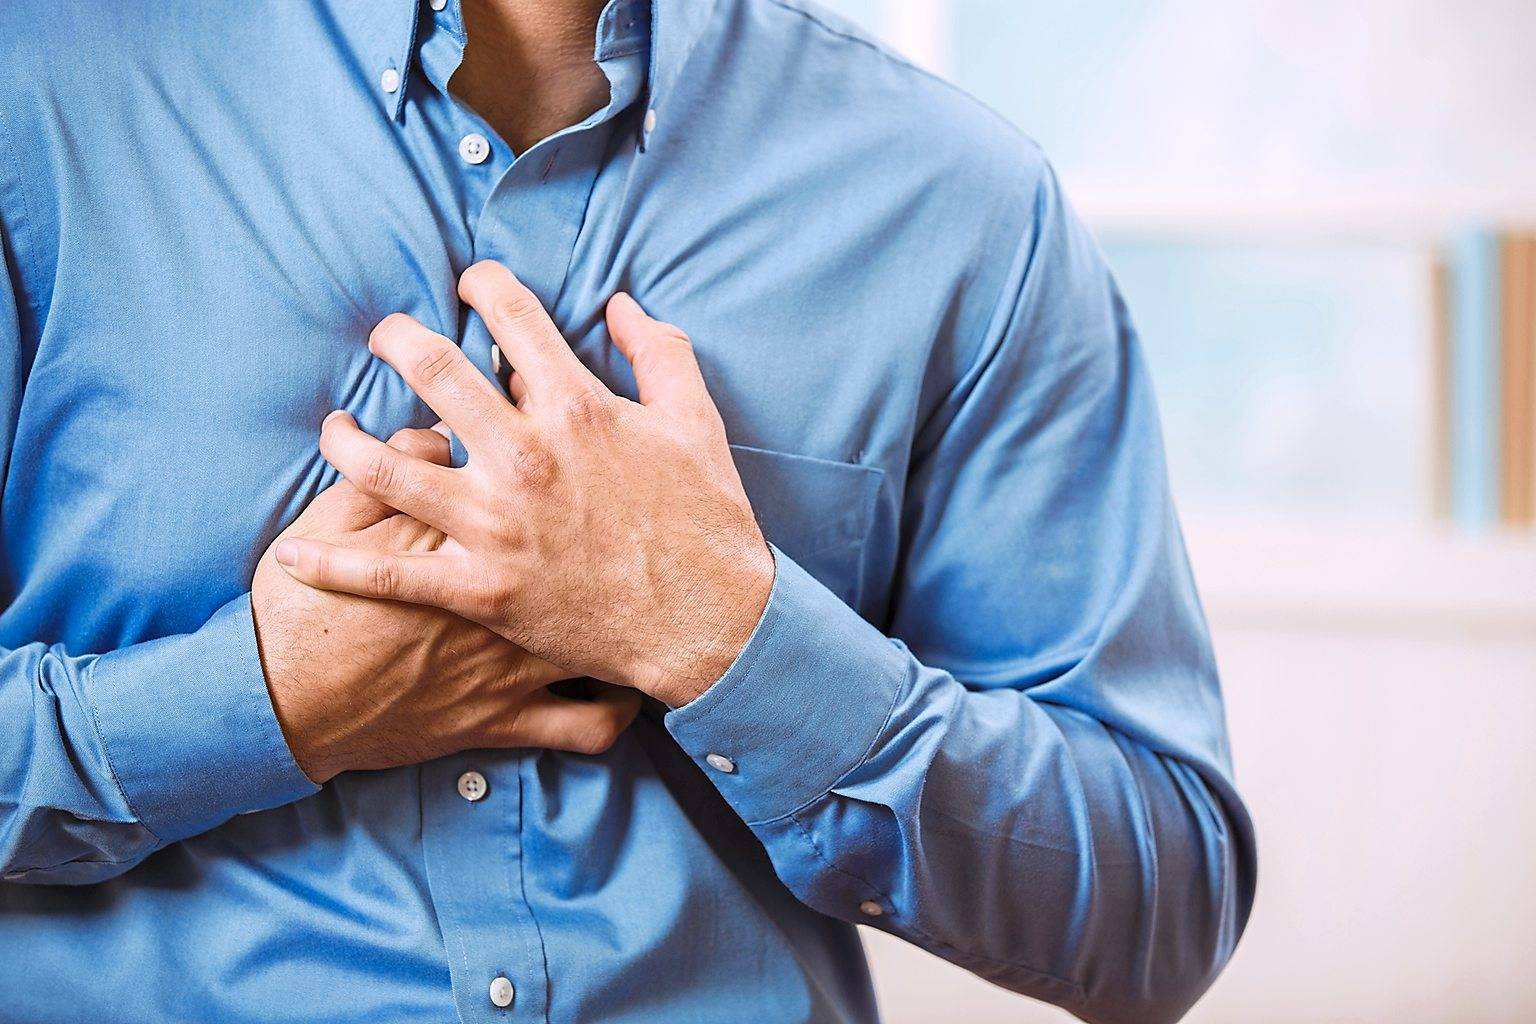 Your risk of heart disease may increase